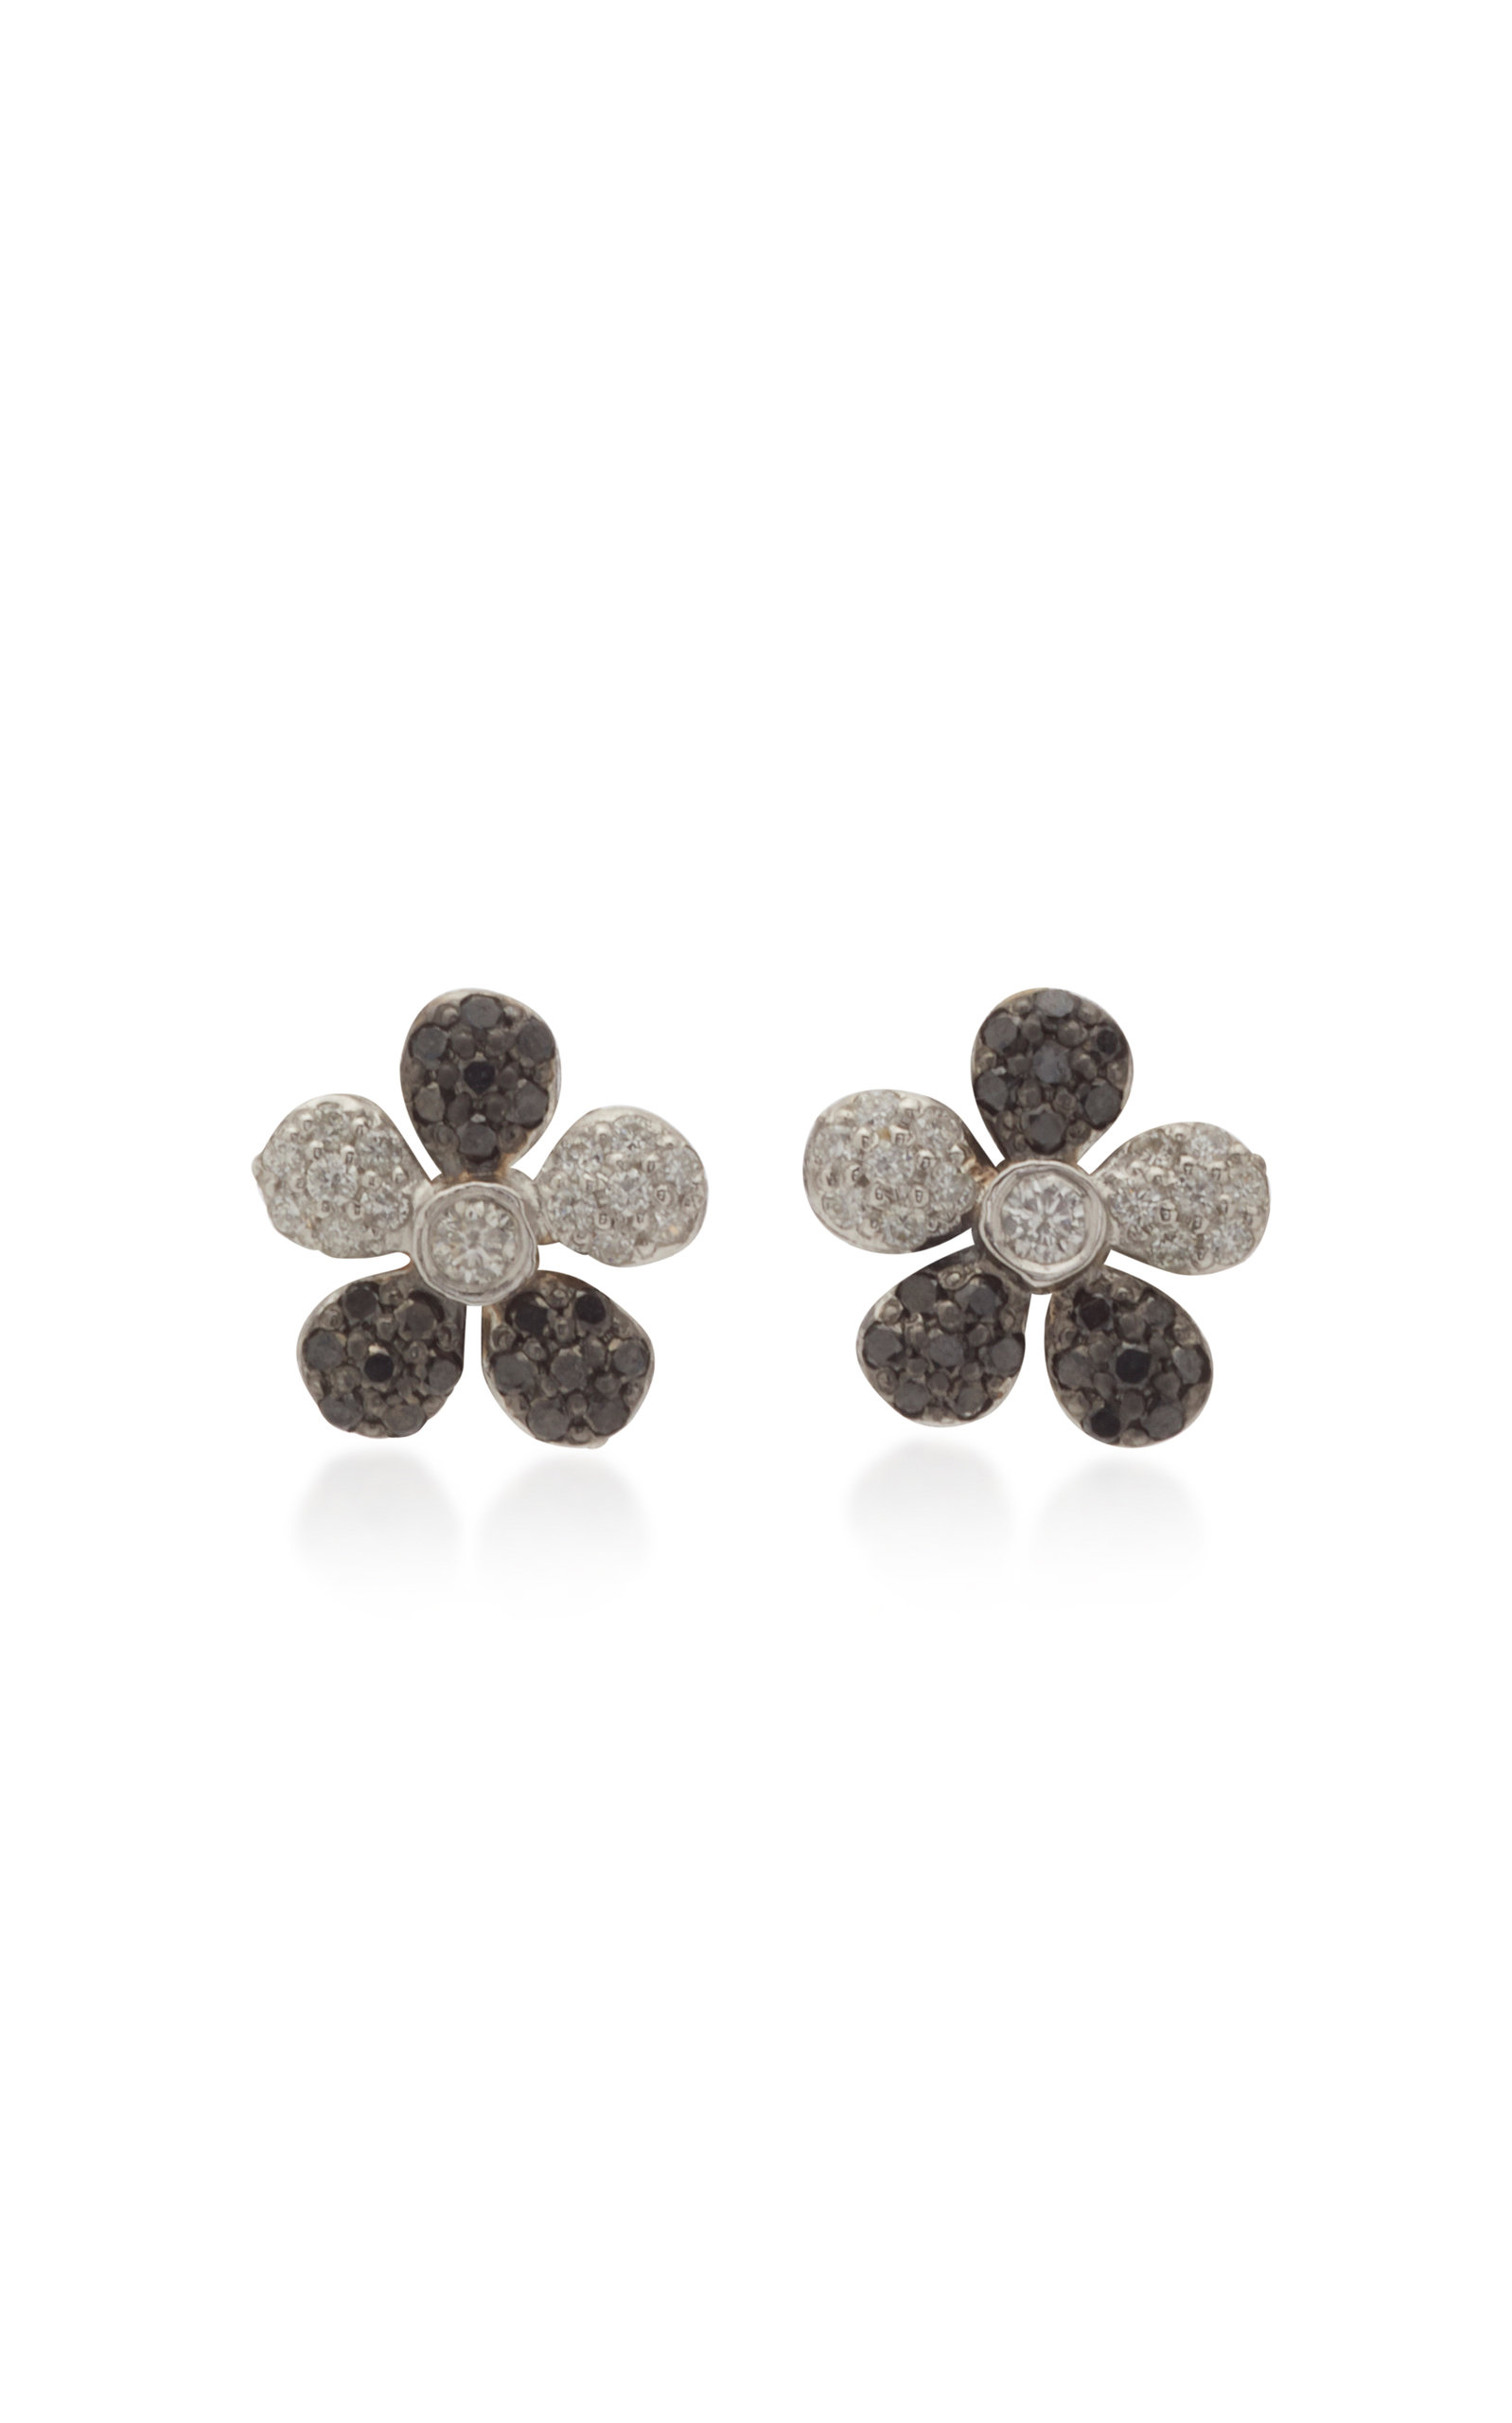 Colette Jewelry Small Flower 18k White And Black Gold Stud Earrings